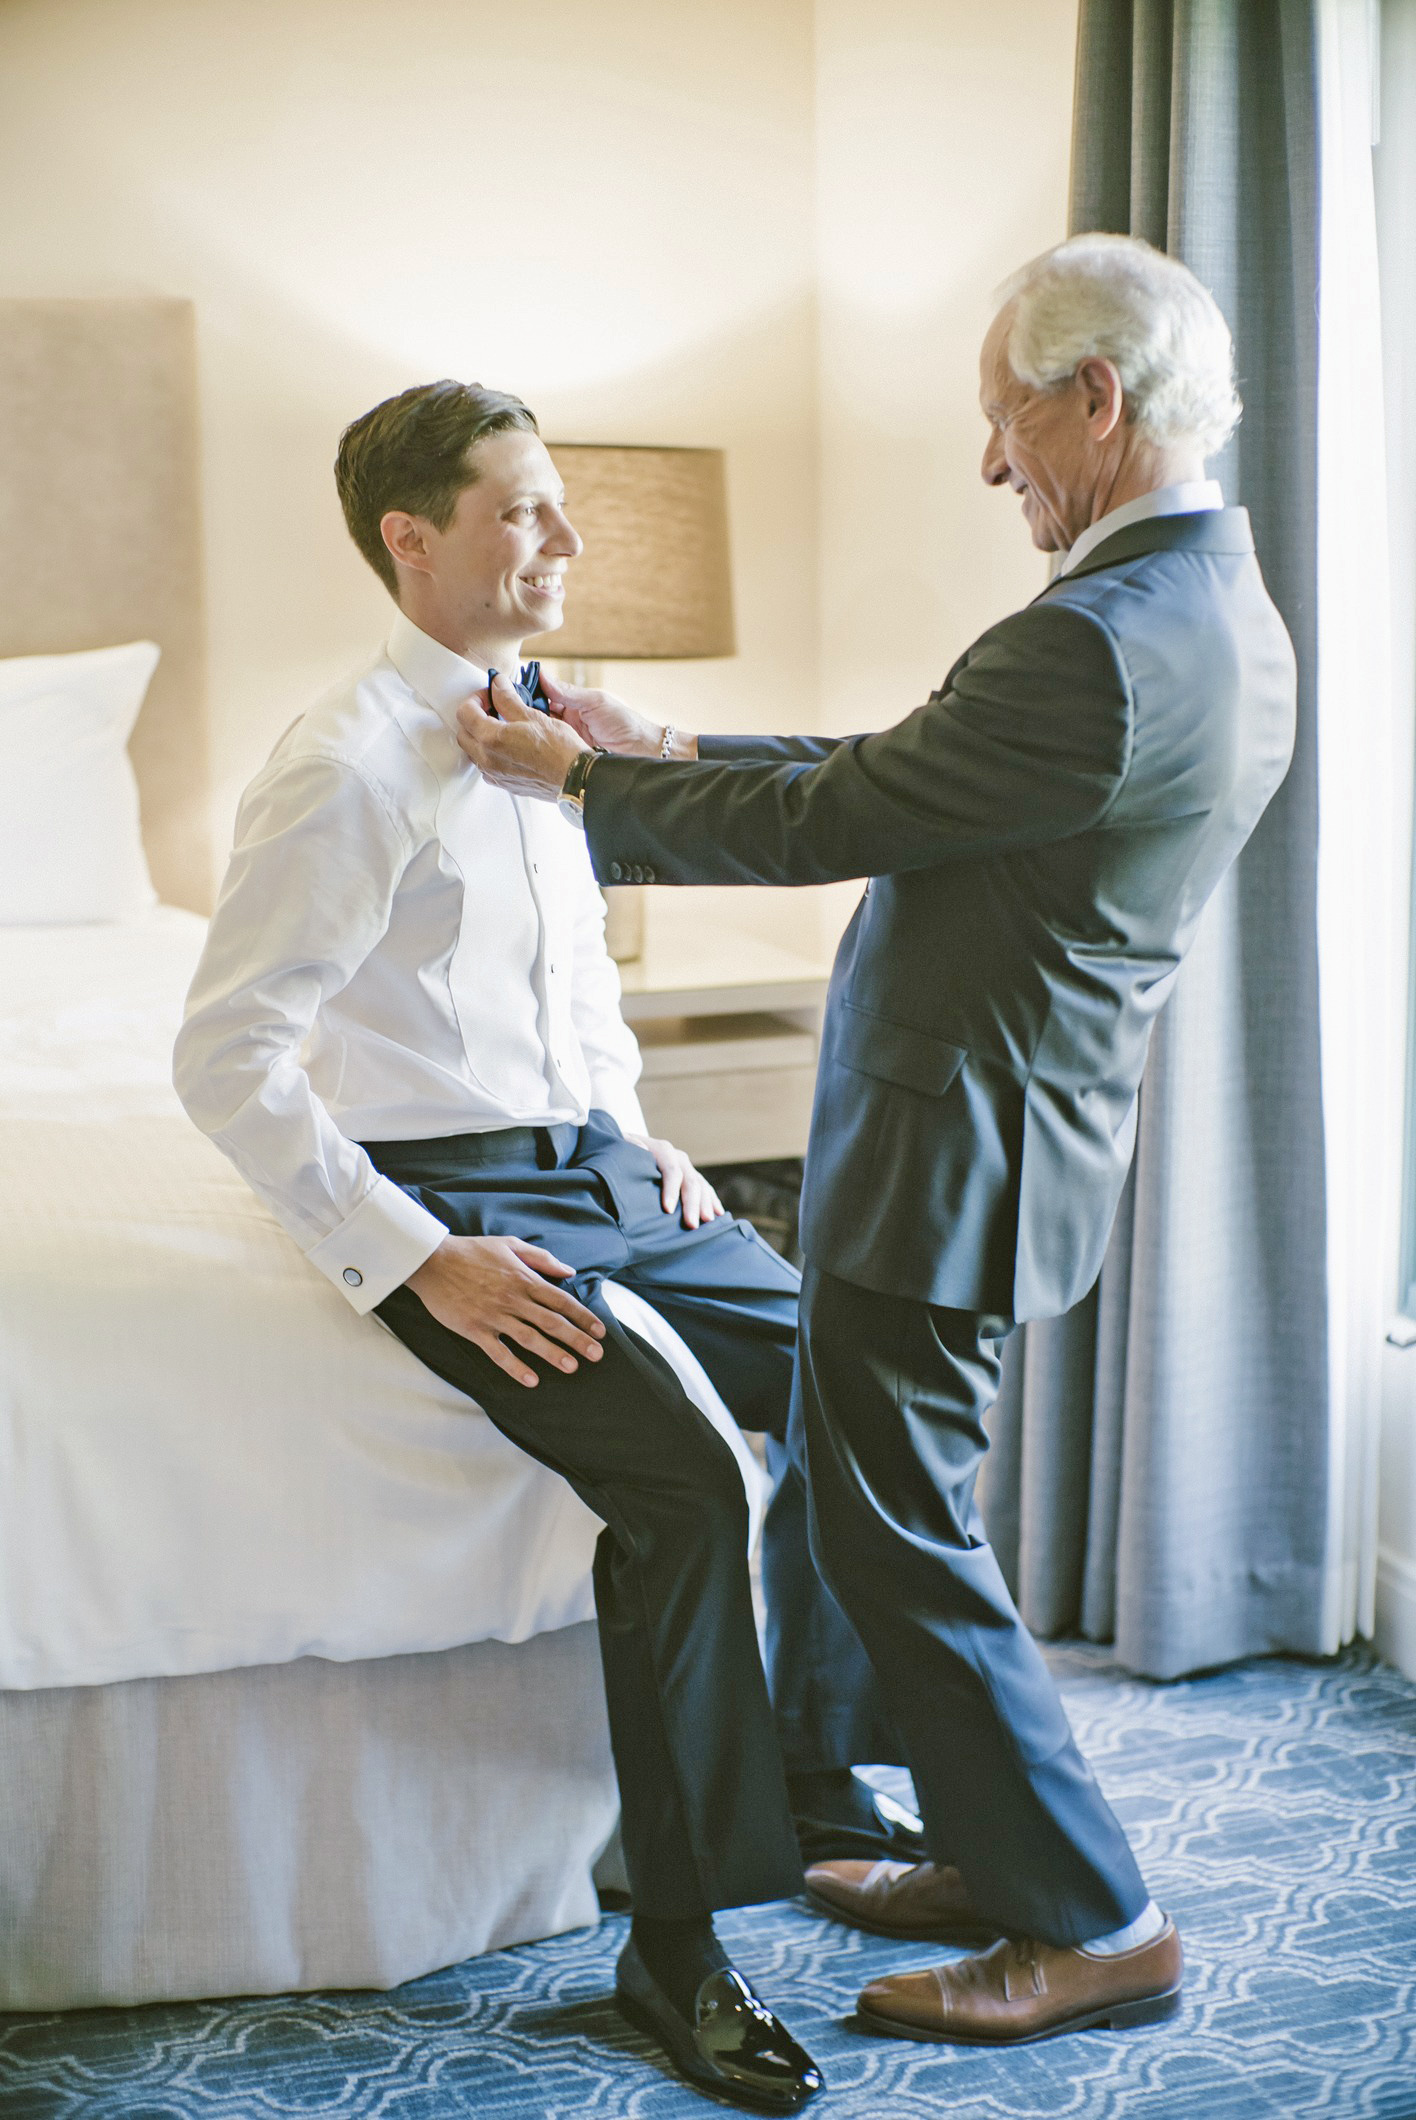 For the Groom: The Best Tips for Bonding with Your Future Father-in-Law